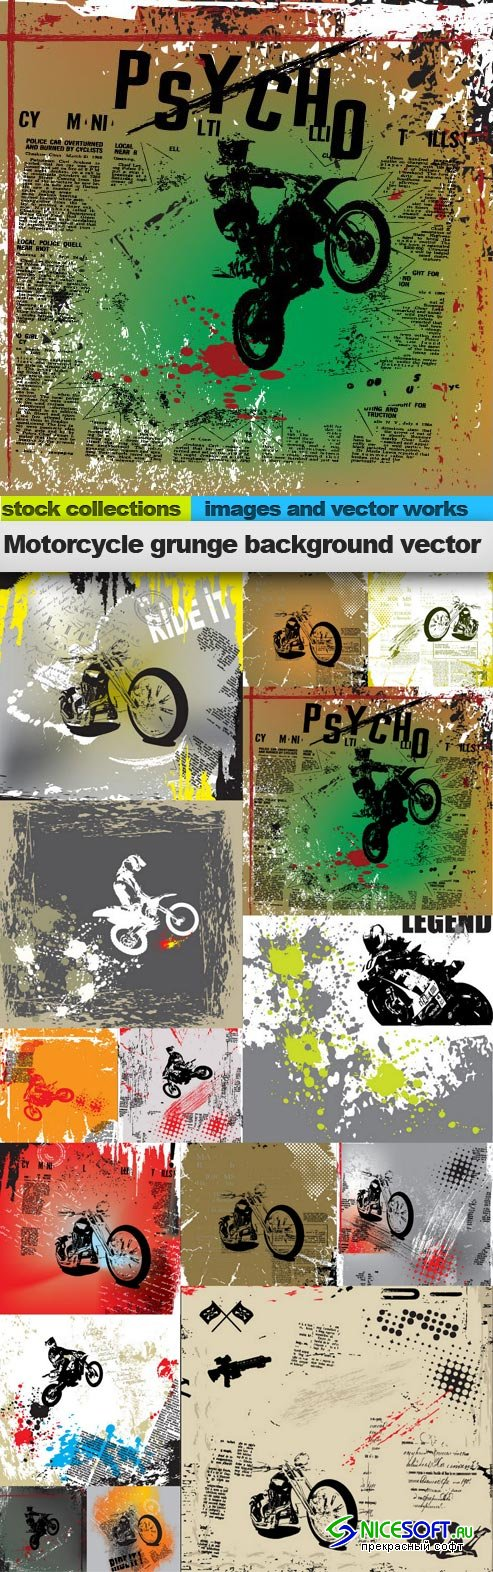 Motorcycle grunge background vector, 15 x EPS